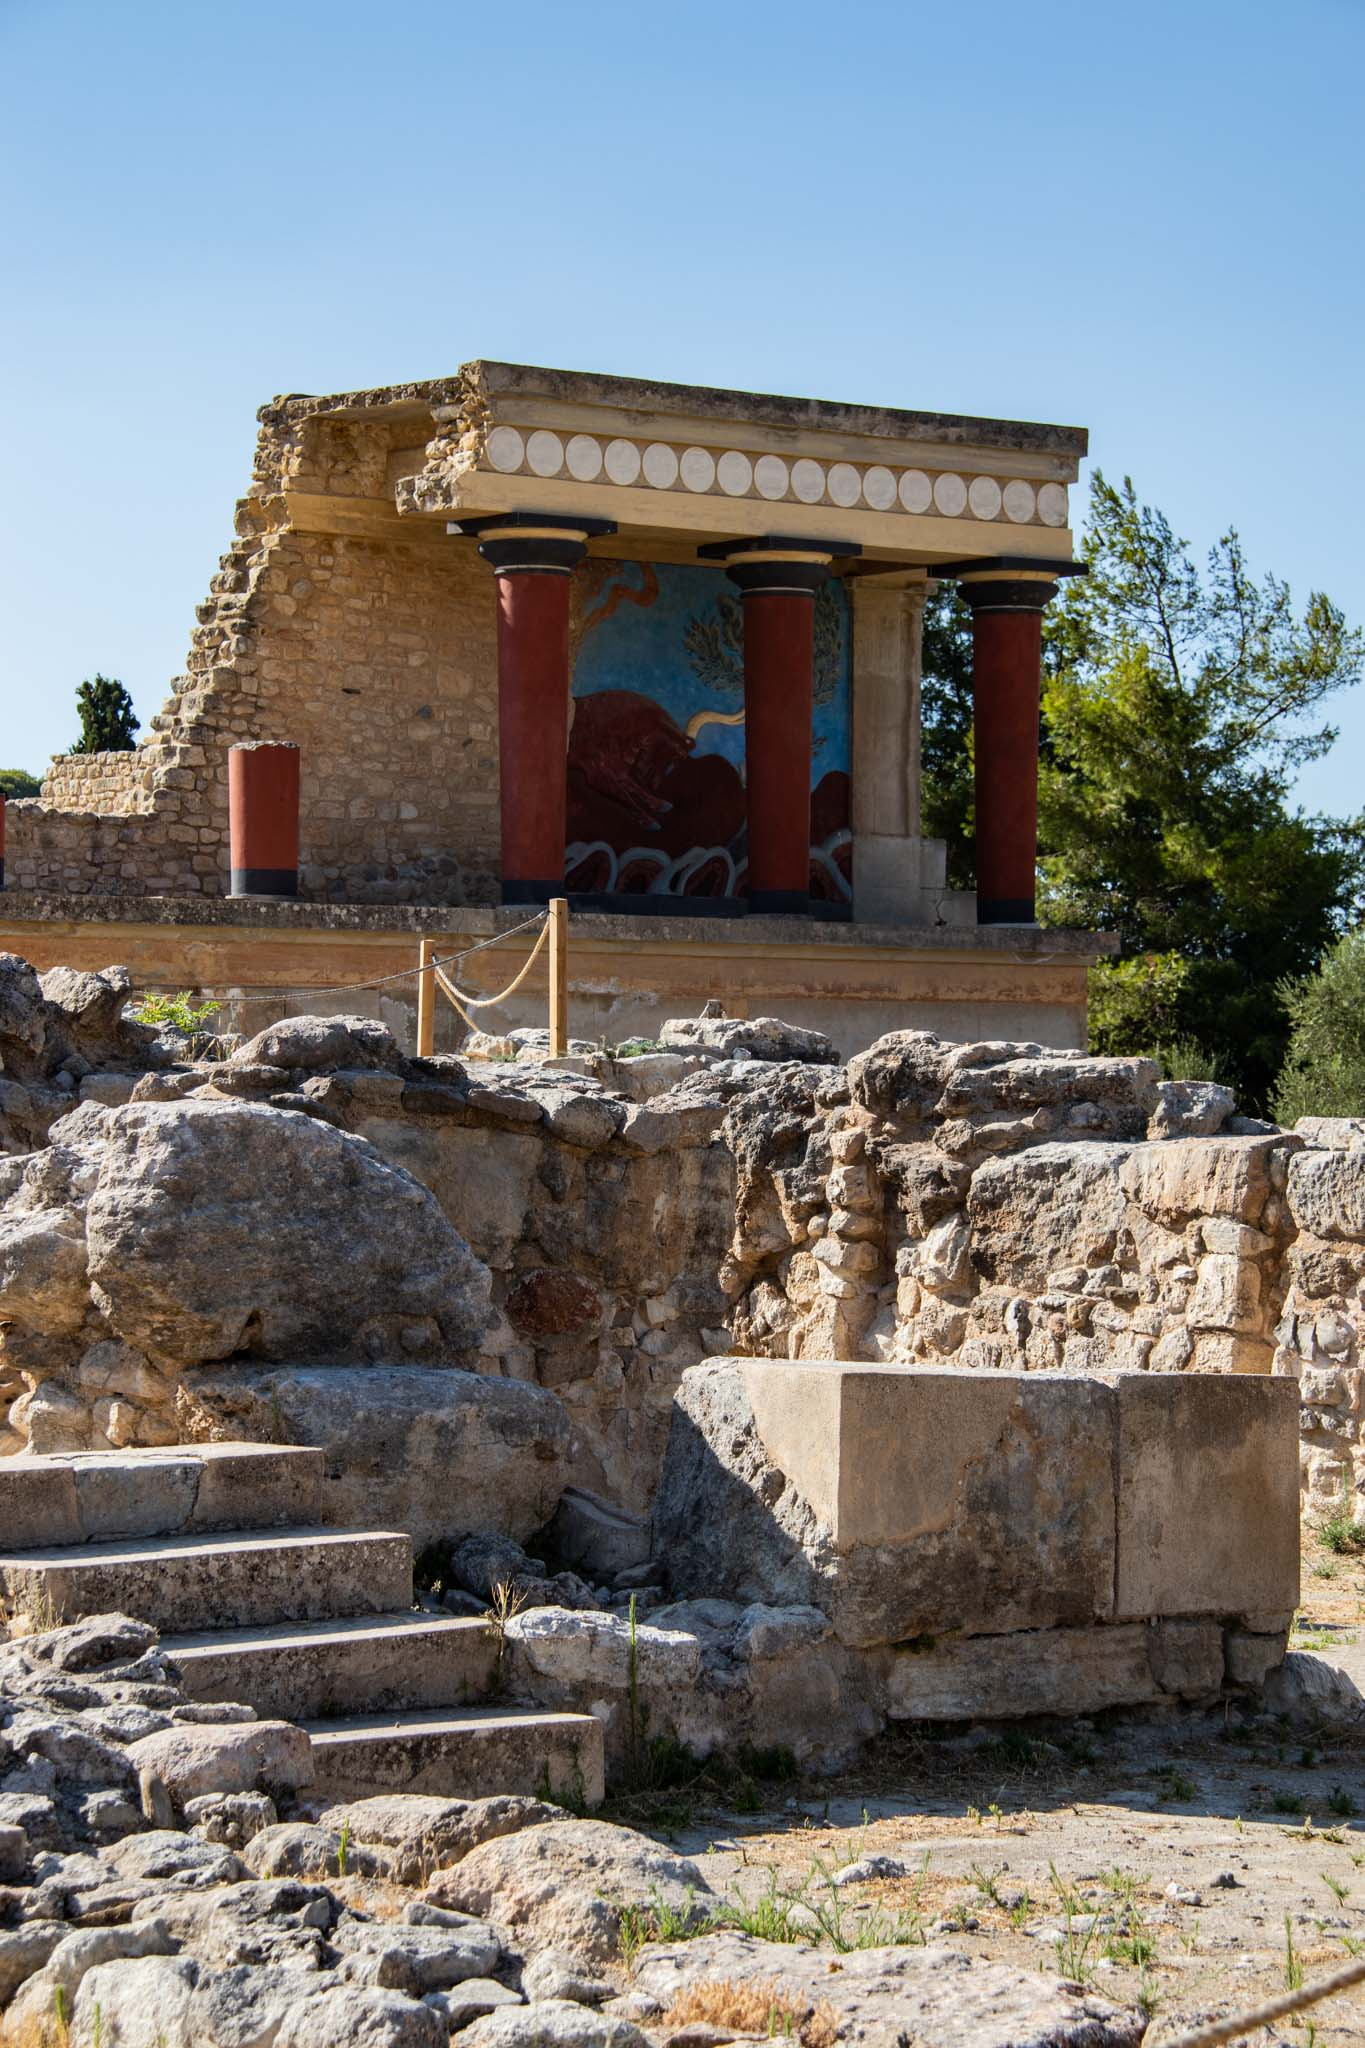 A view over the Palace of Knossos,  in Greece.